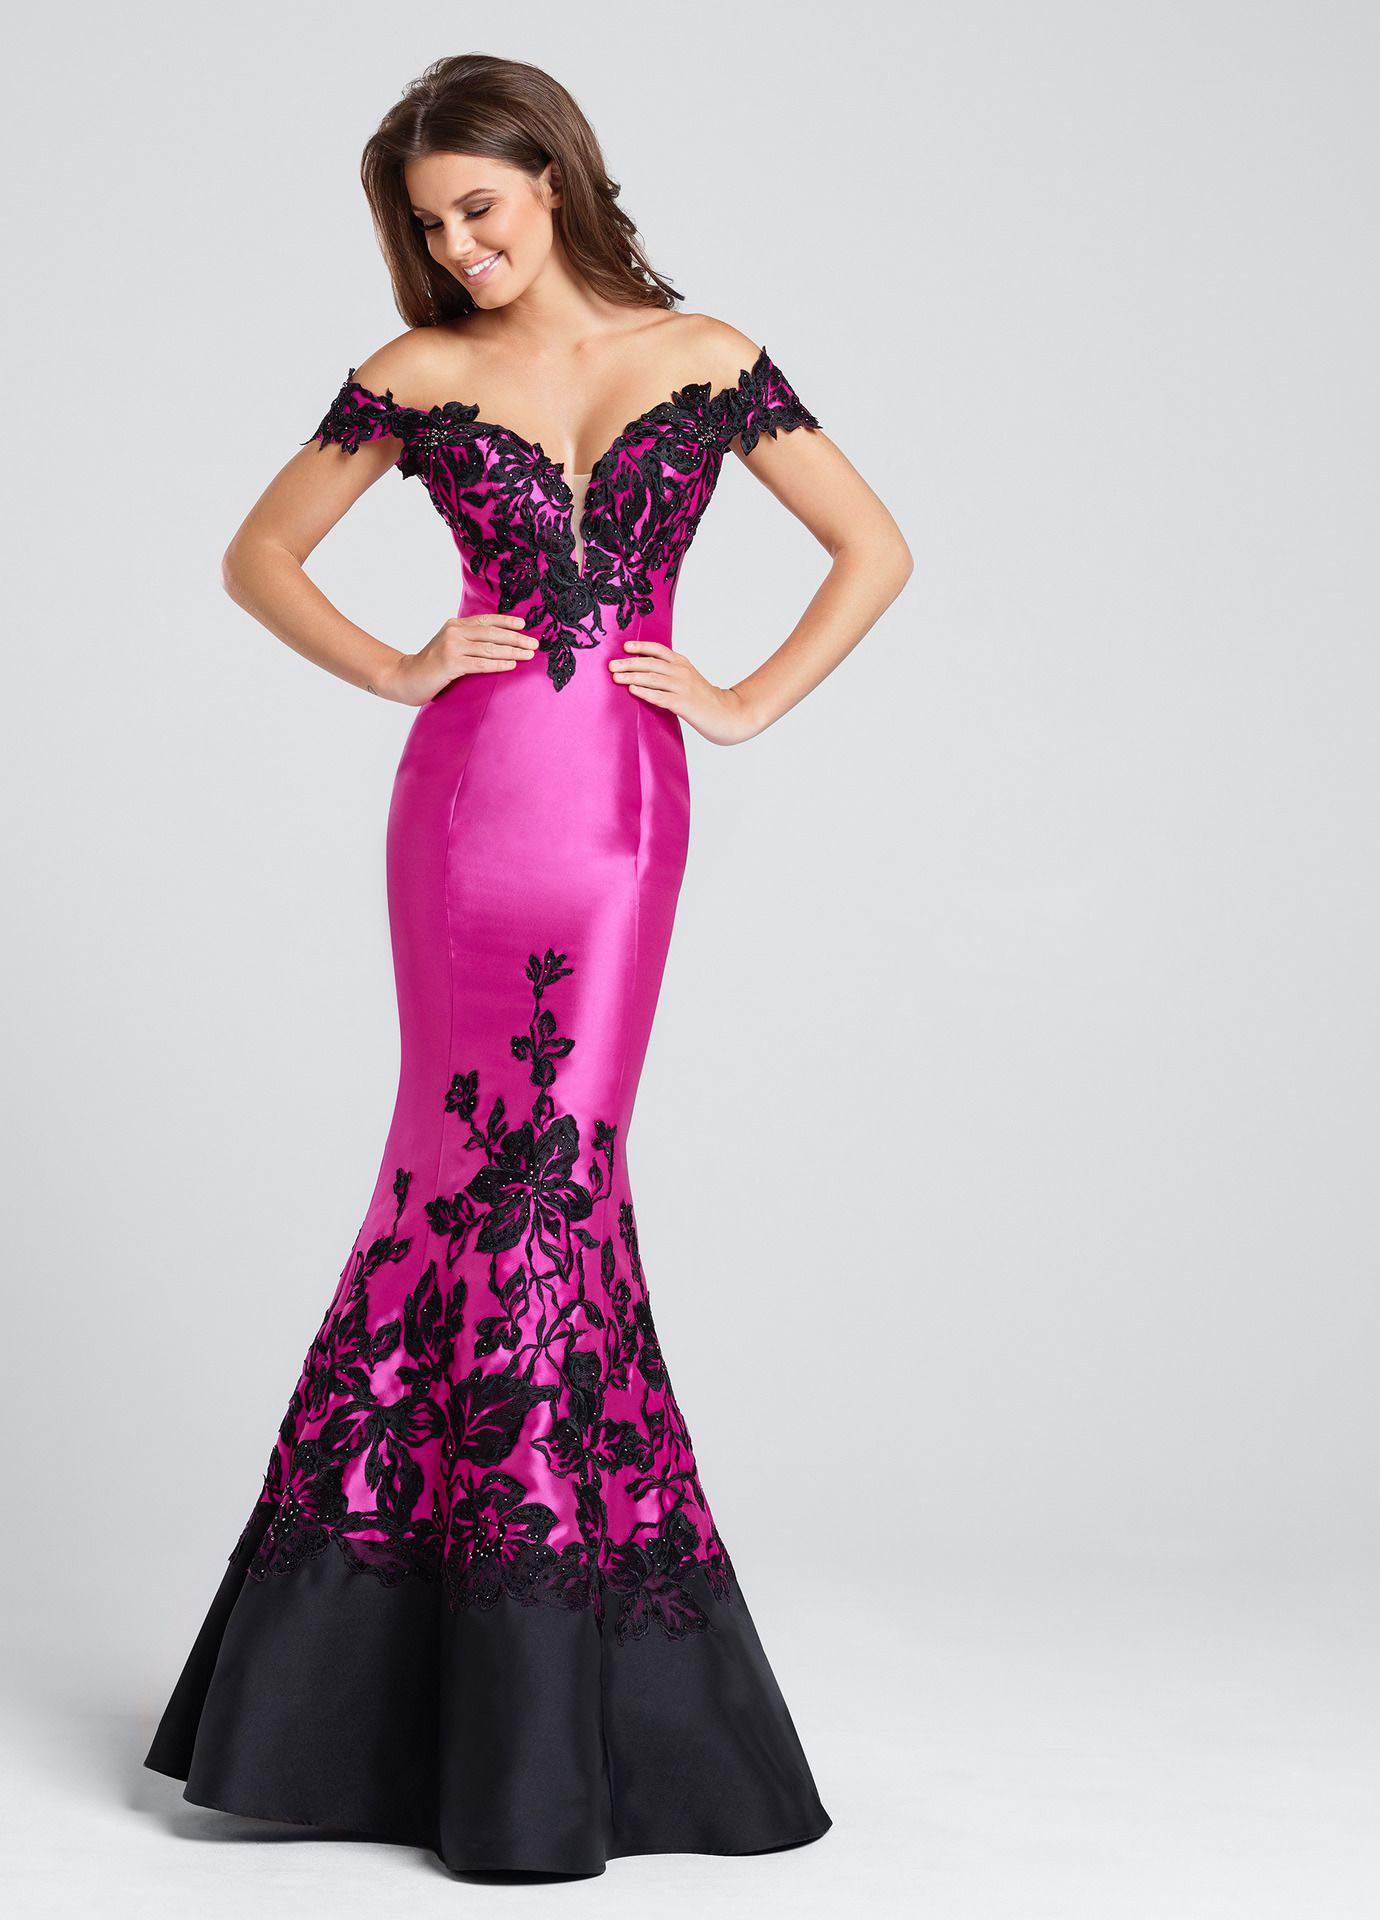 Ellie Wilde - Shine bright on the night of your prom with an elegant look from Ellie Wilde. From fabulous prints to stylish beading, exceptional silhouettes an fashion-forward colors, you will find just what you're looking for with Ellie Wilde!